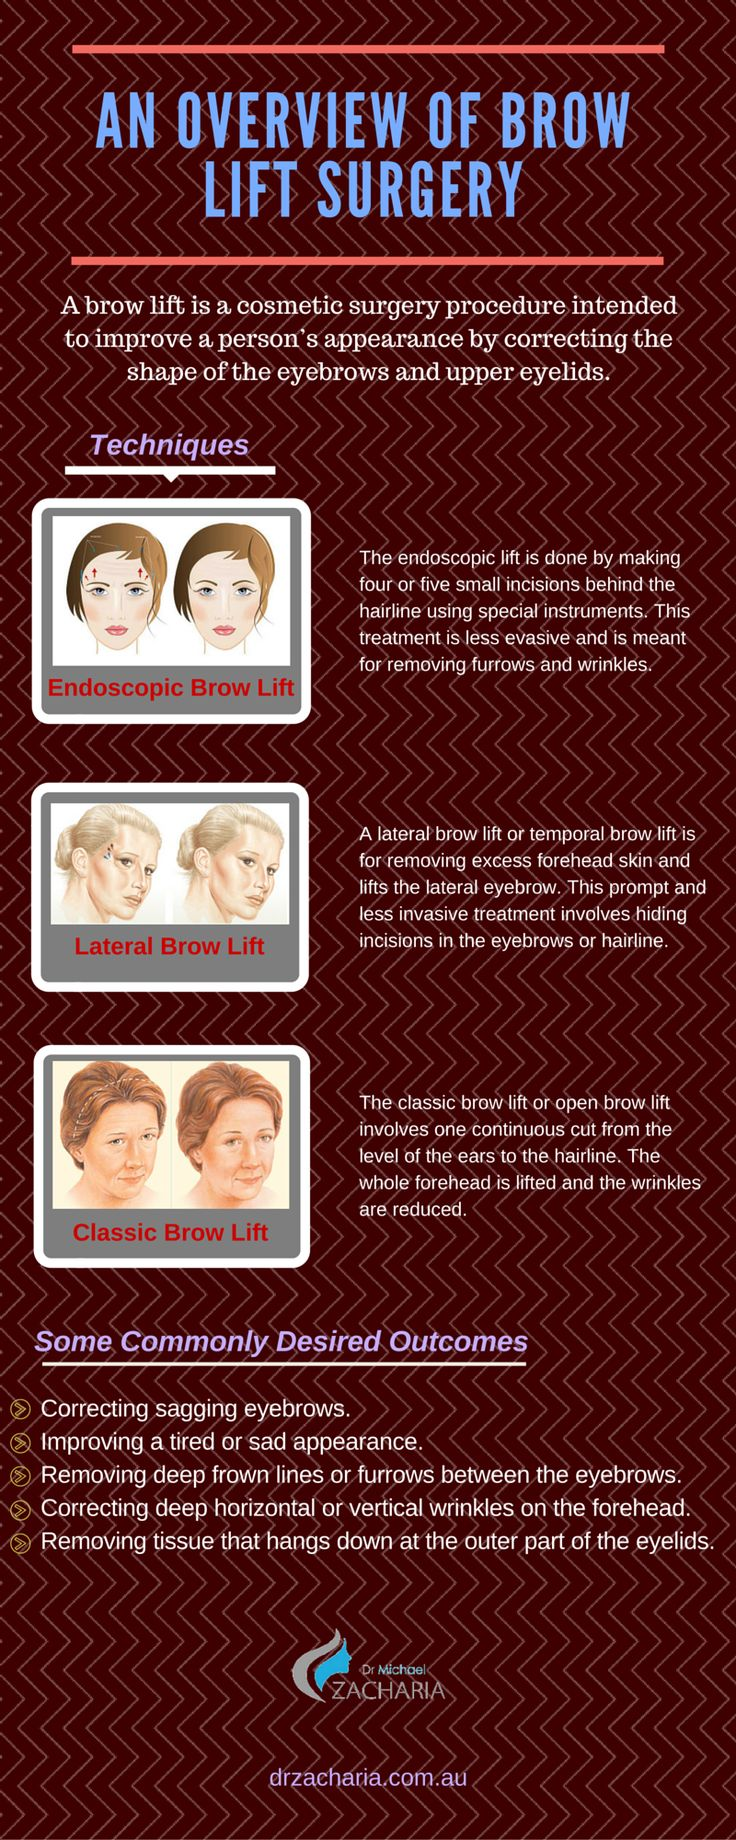 A brow lift surgery is meant for improving the shape of the upper eyelids and eyebrows. The various types of brow lift surgeries are endoscopic brow lift, lateral brow lift, classic brow lift. A brief overview of these surgeries along with their positive outcomes has been discussed briefly.